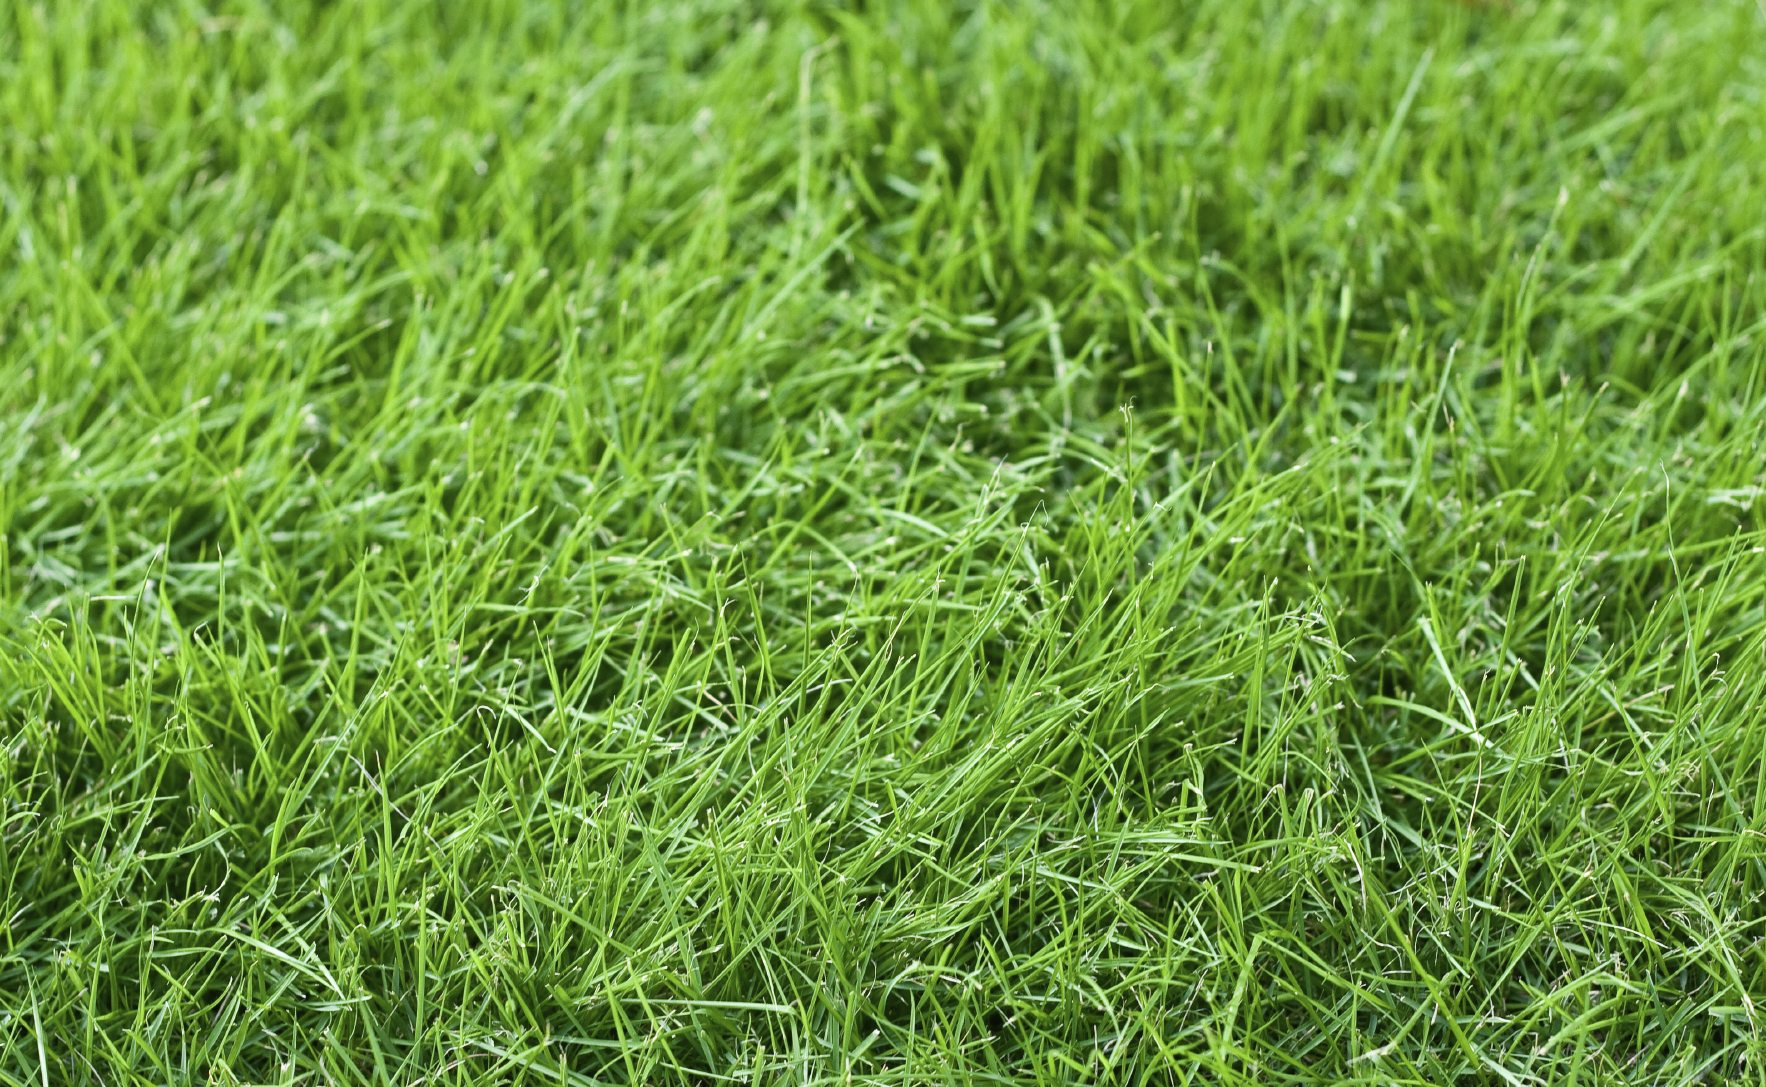 grass fescue lawn fine seed shade fescues nz young types bermuda vs lawns growing tolerant care does grasses maryland mow